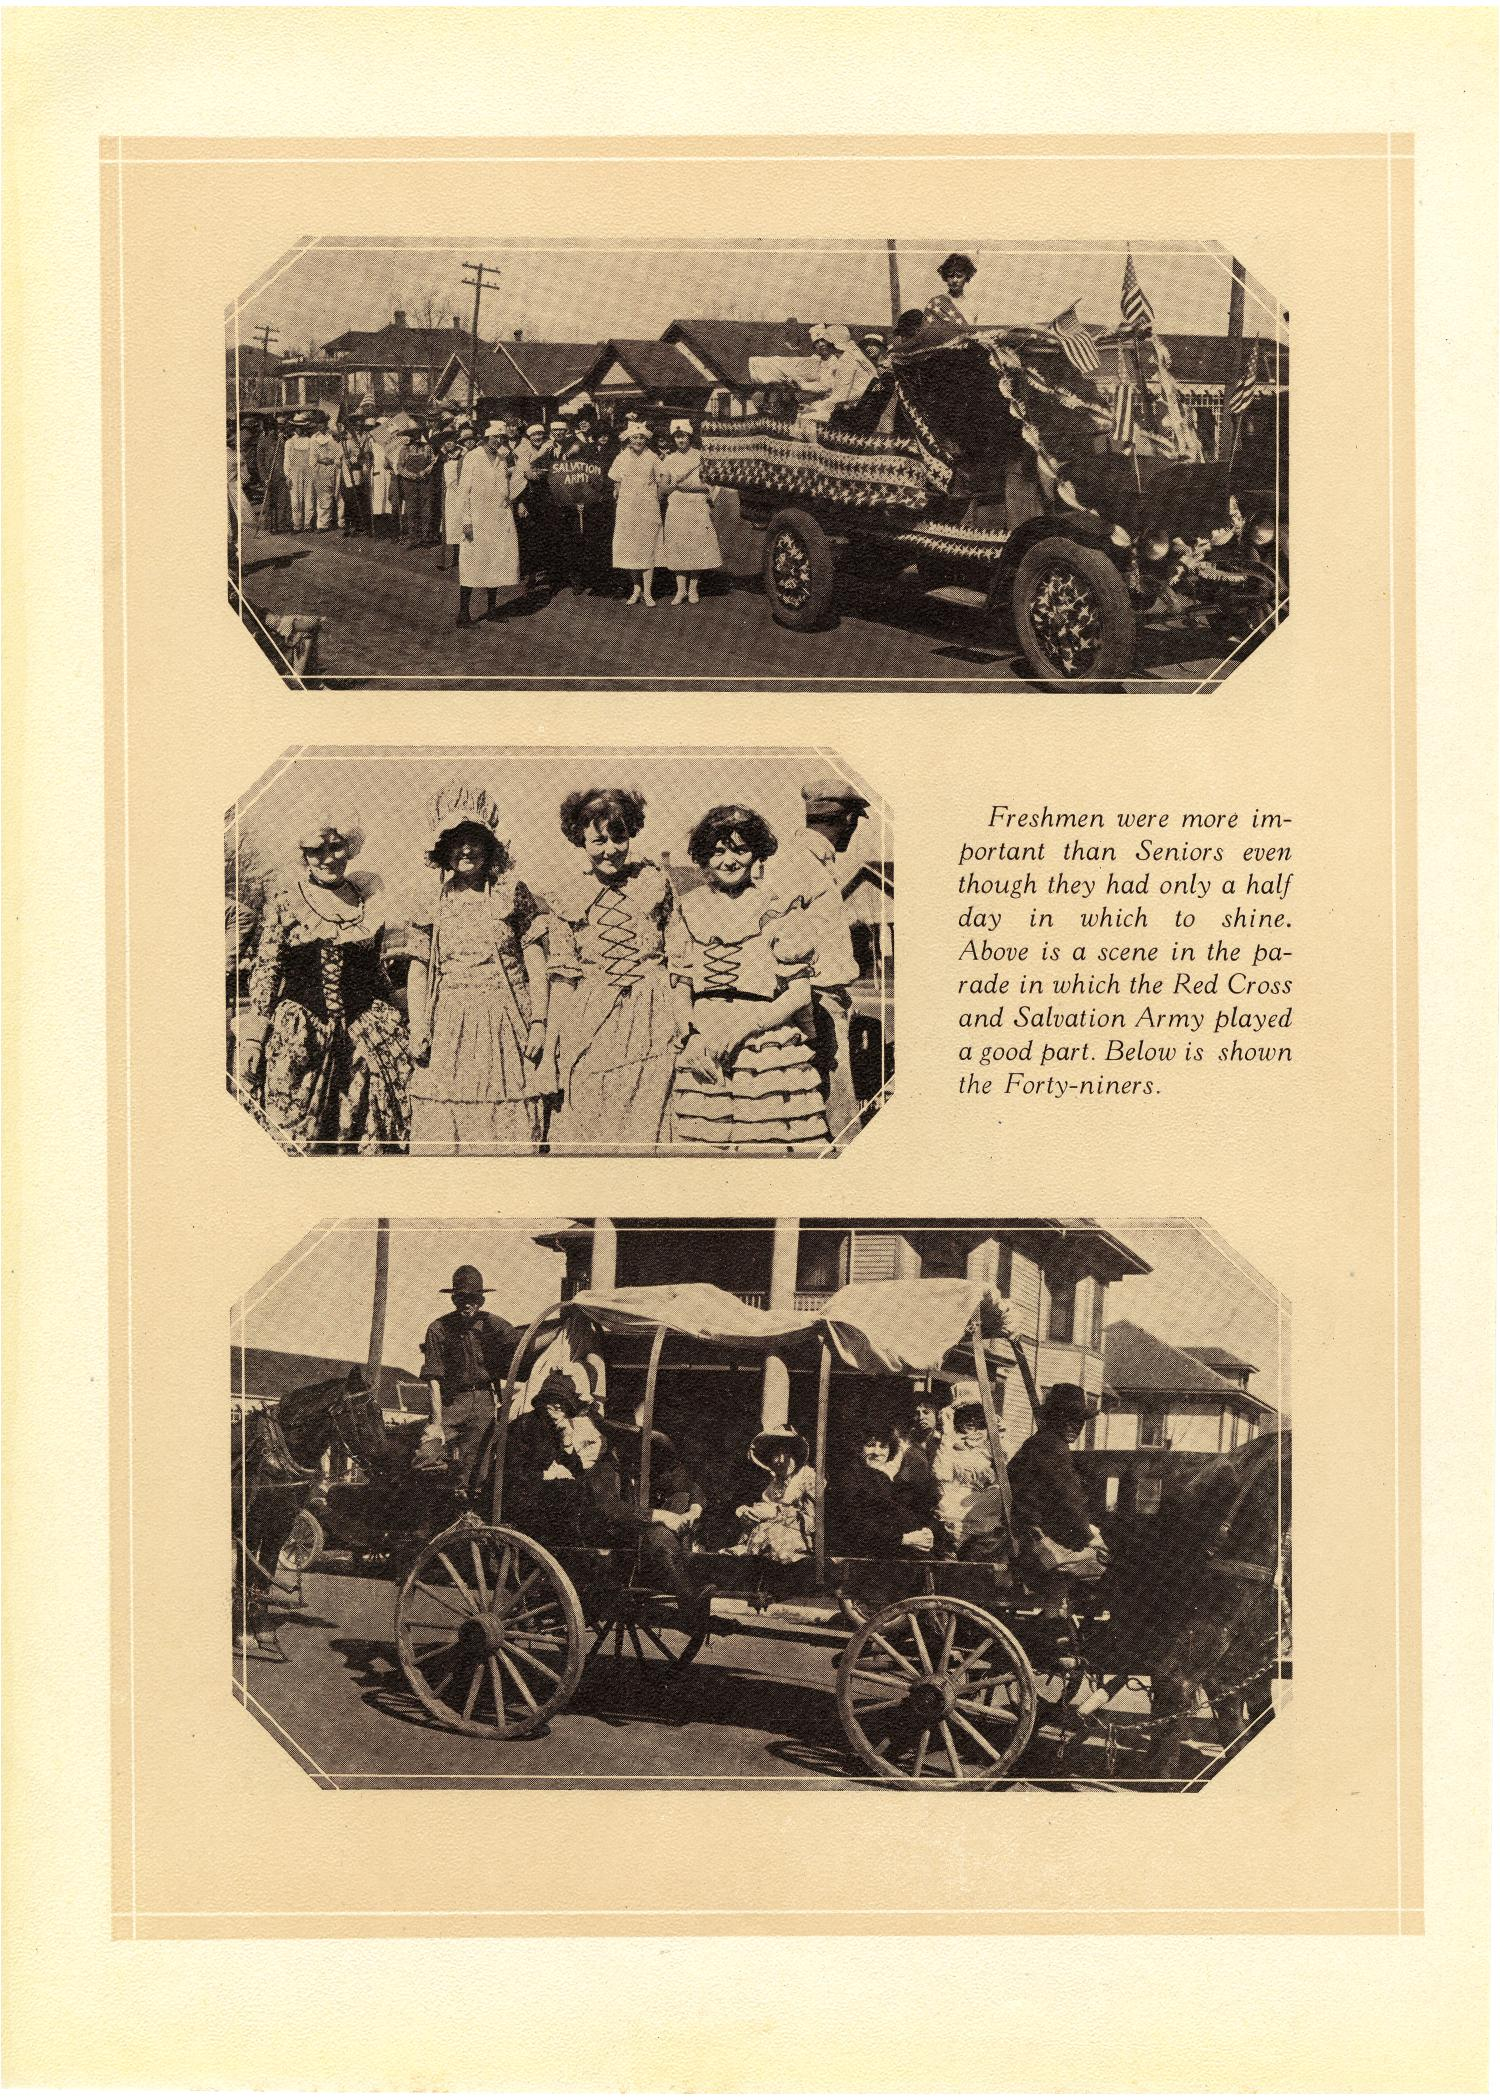 Three black and white photographs on a page. The top is of an old automobile with patriotic garlands, and women walking behind dressed in white nurse outfits. The middle is of four women dressed in pioneer style dresses. The bottom is of a covered wagon with seven people sitting in it with a horse at the front.